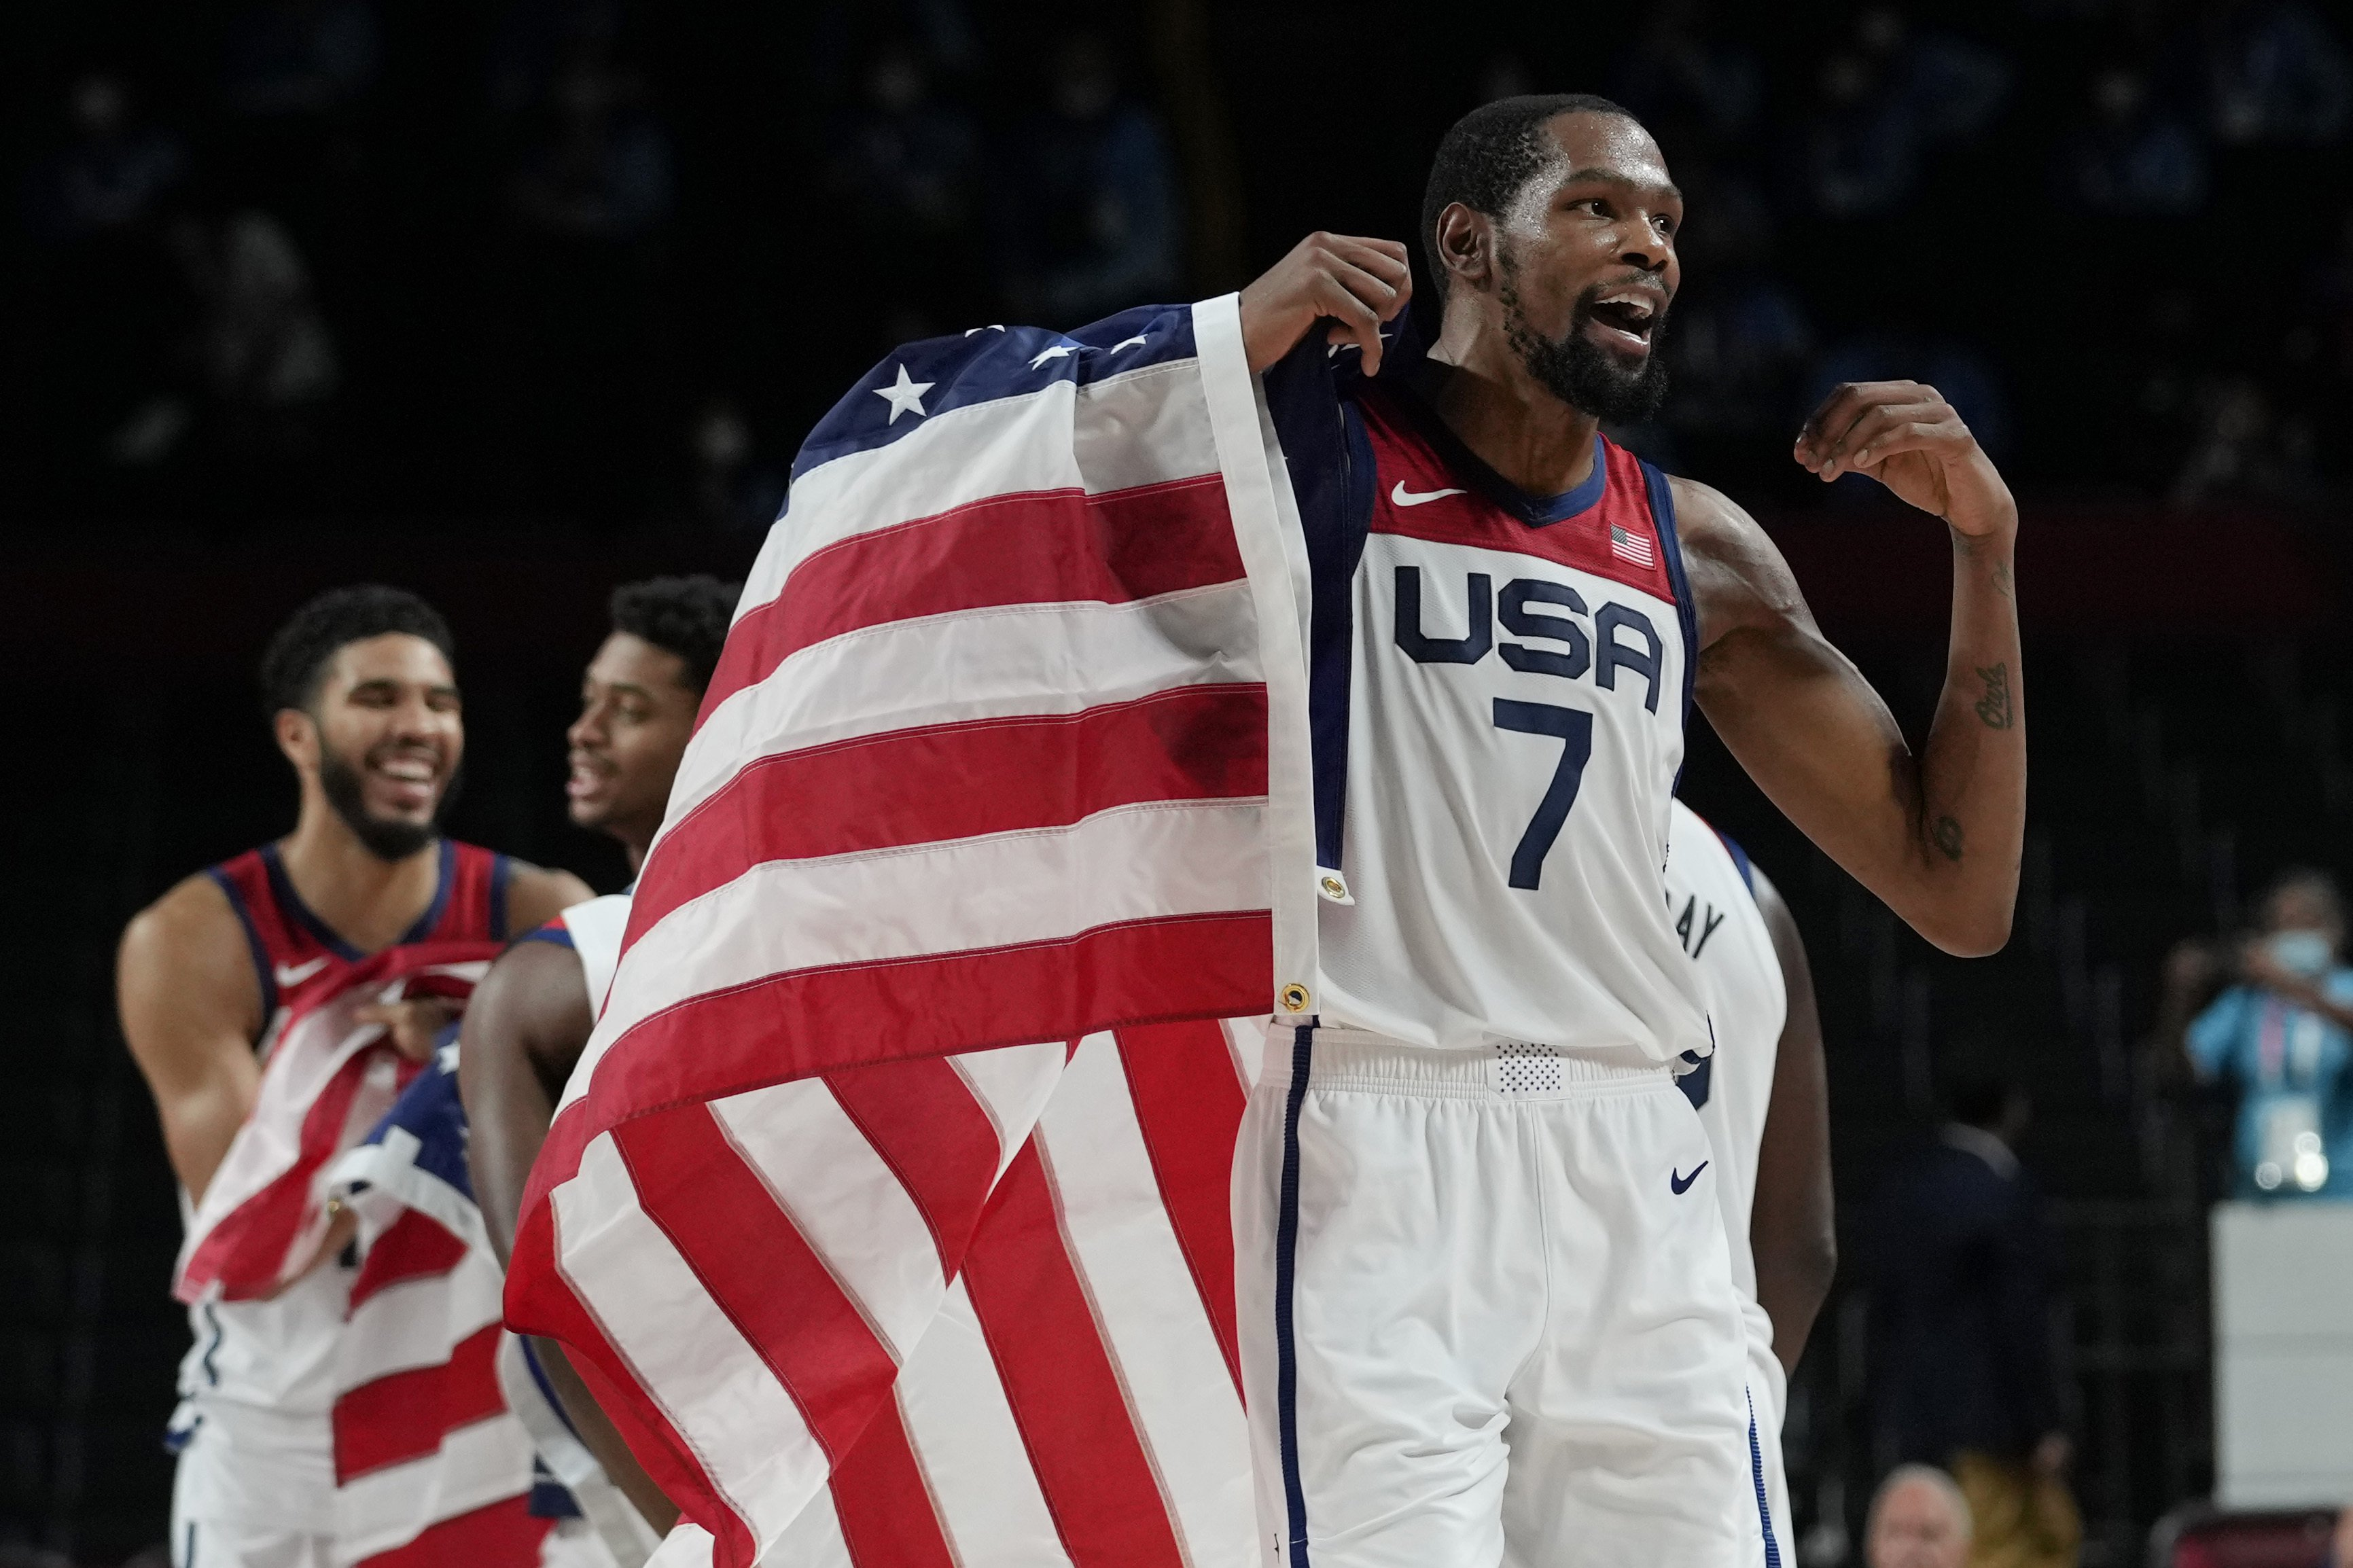 U.S. beats France, captures gold in men's basketball once again